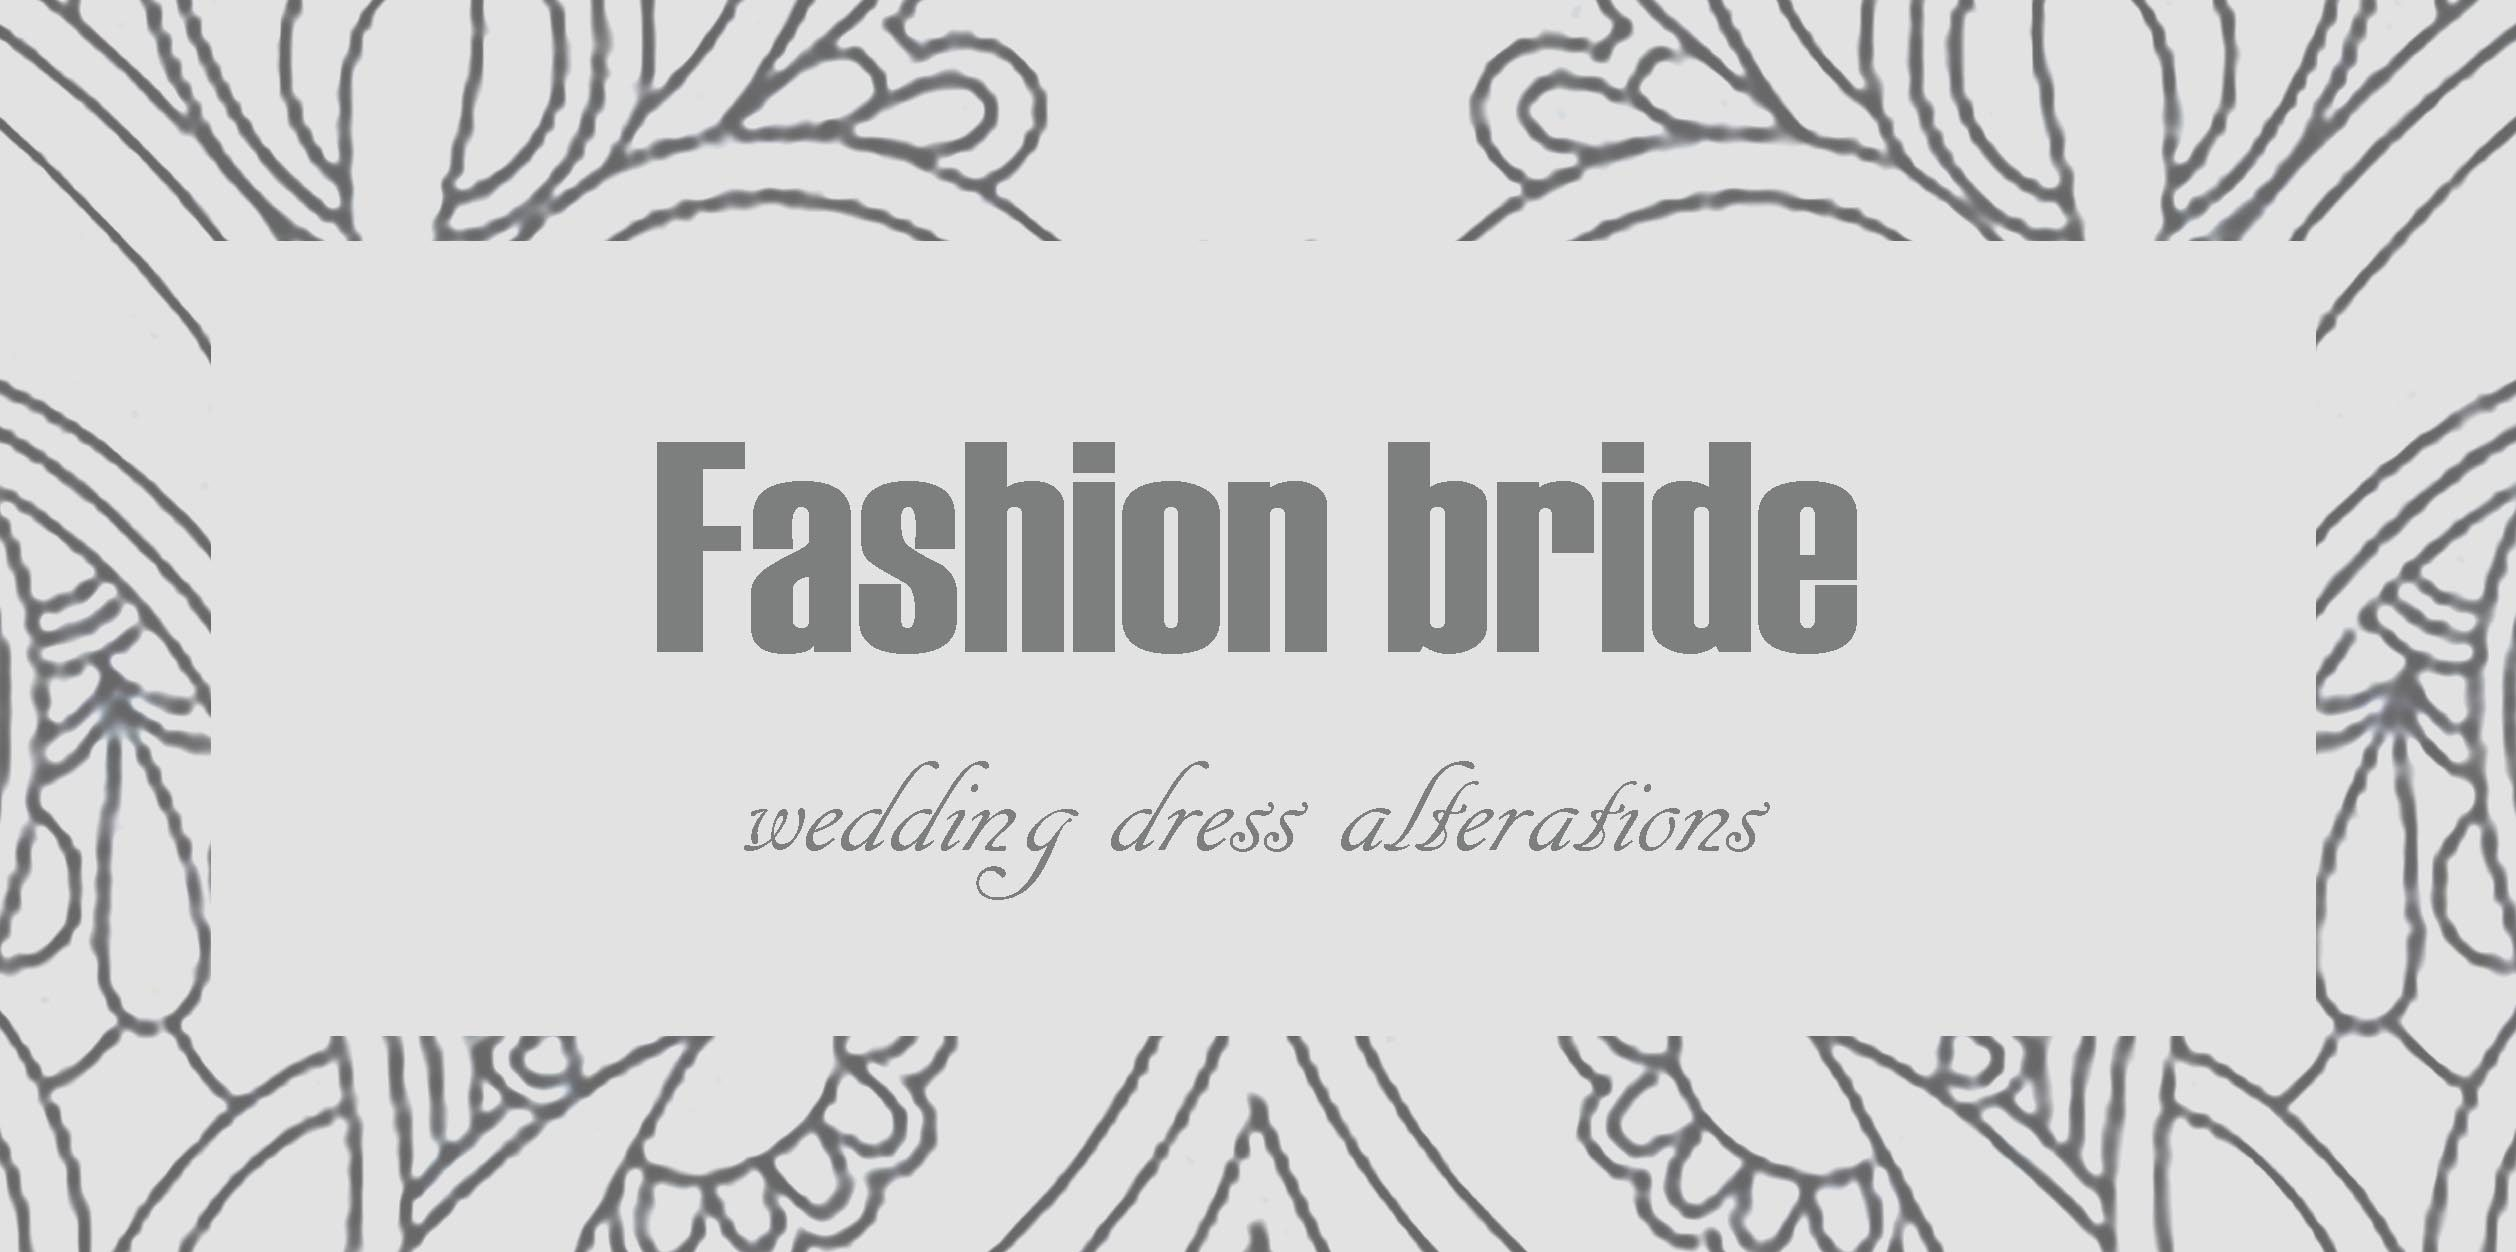 Dressmaking and bridal alterations